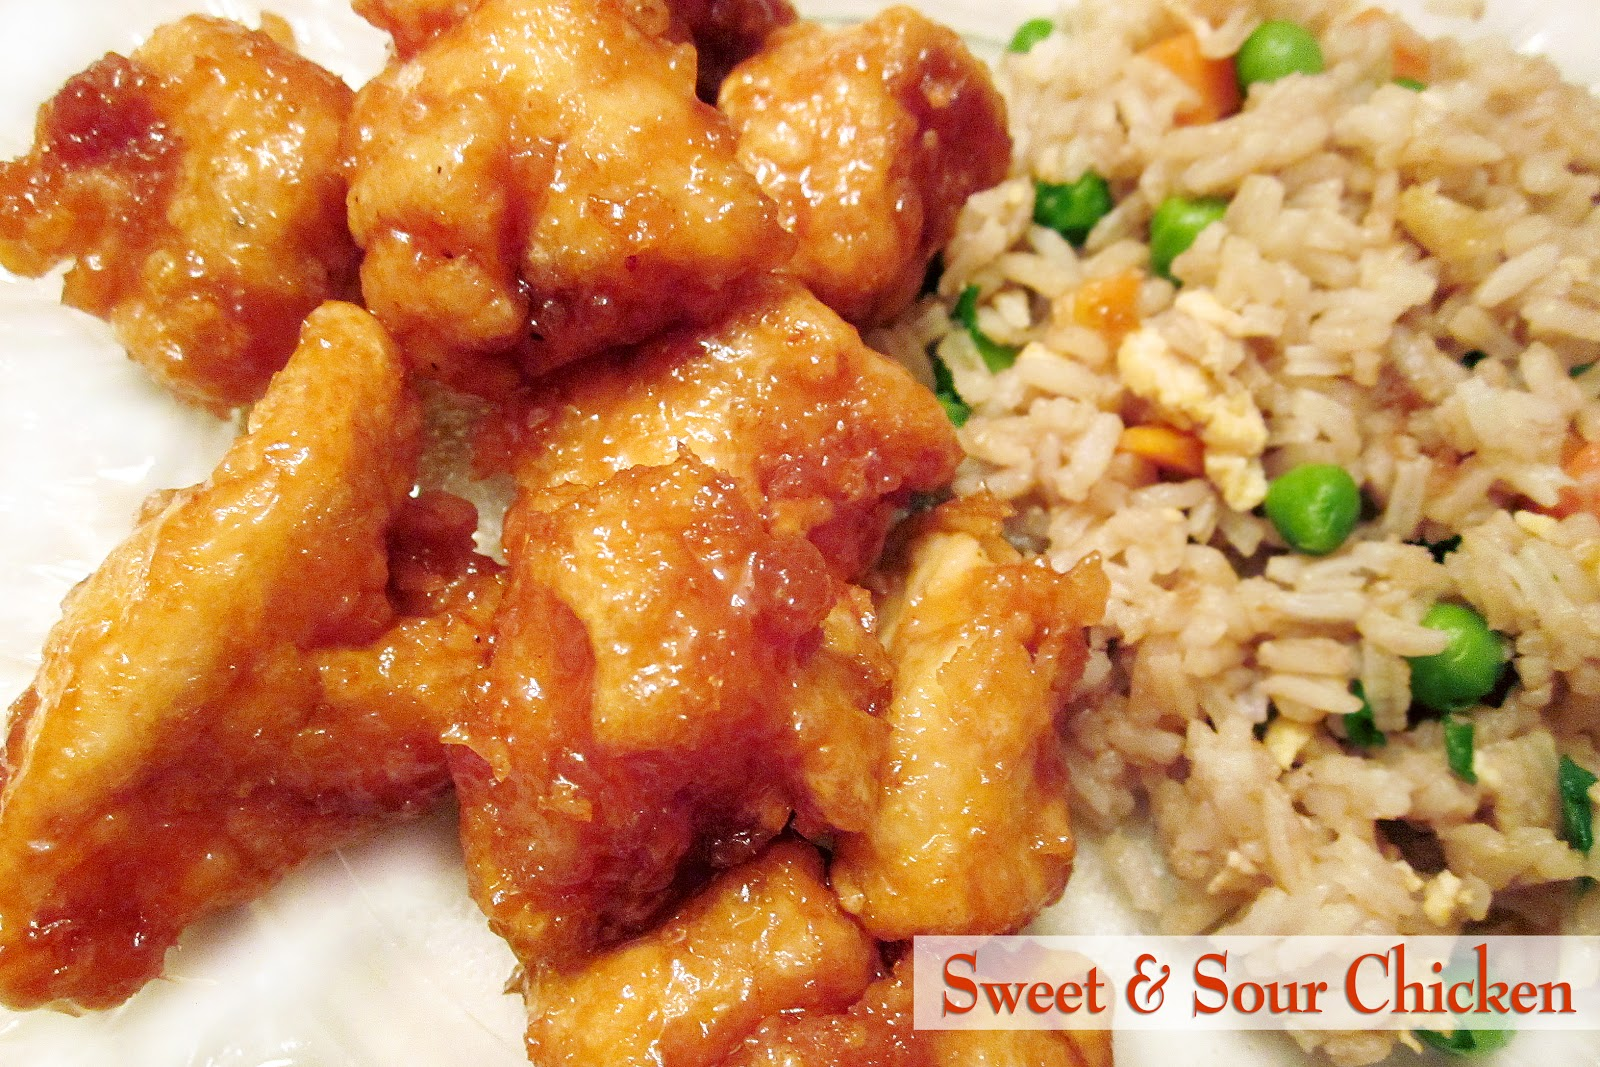 Diddles and Dumplings: Sweet & Sour Chicken